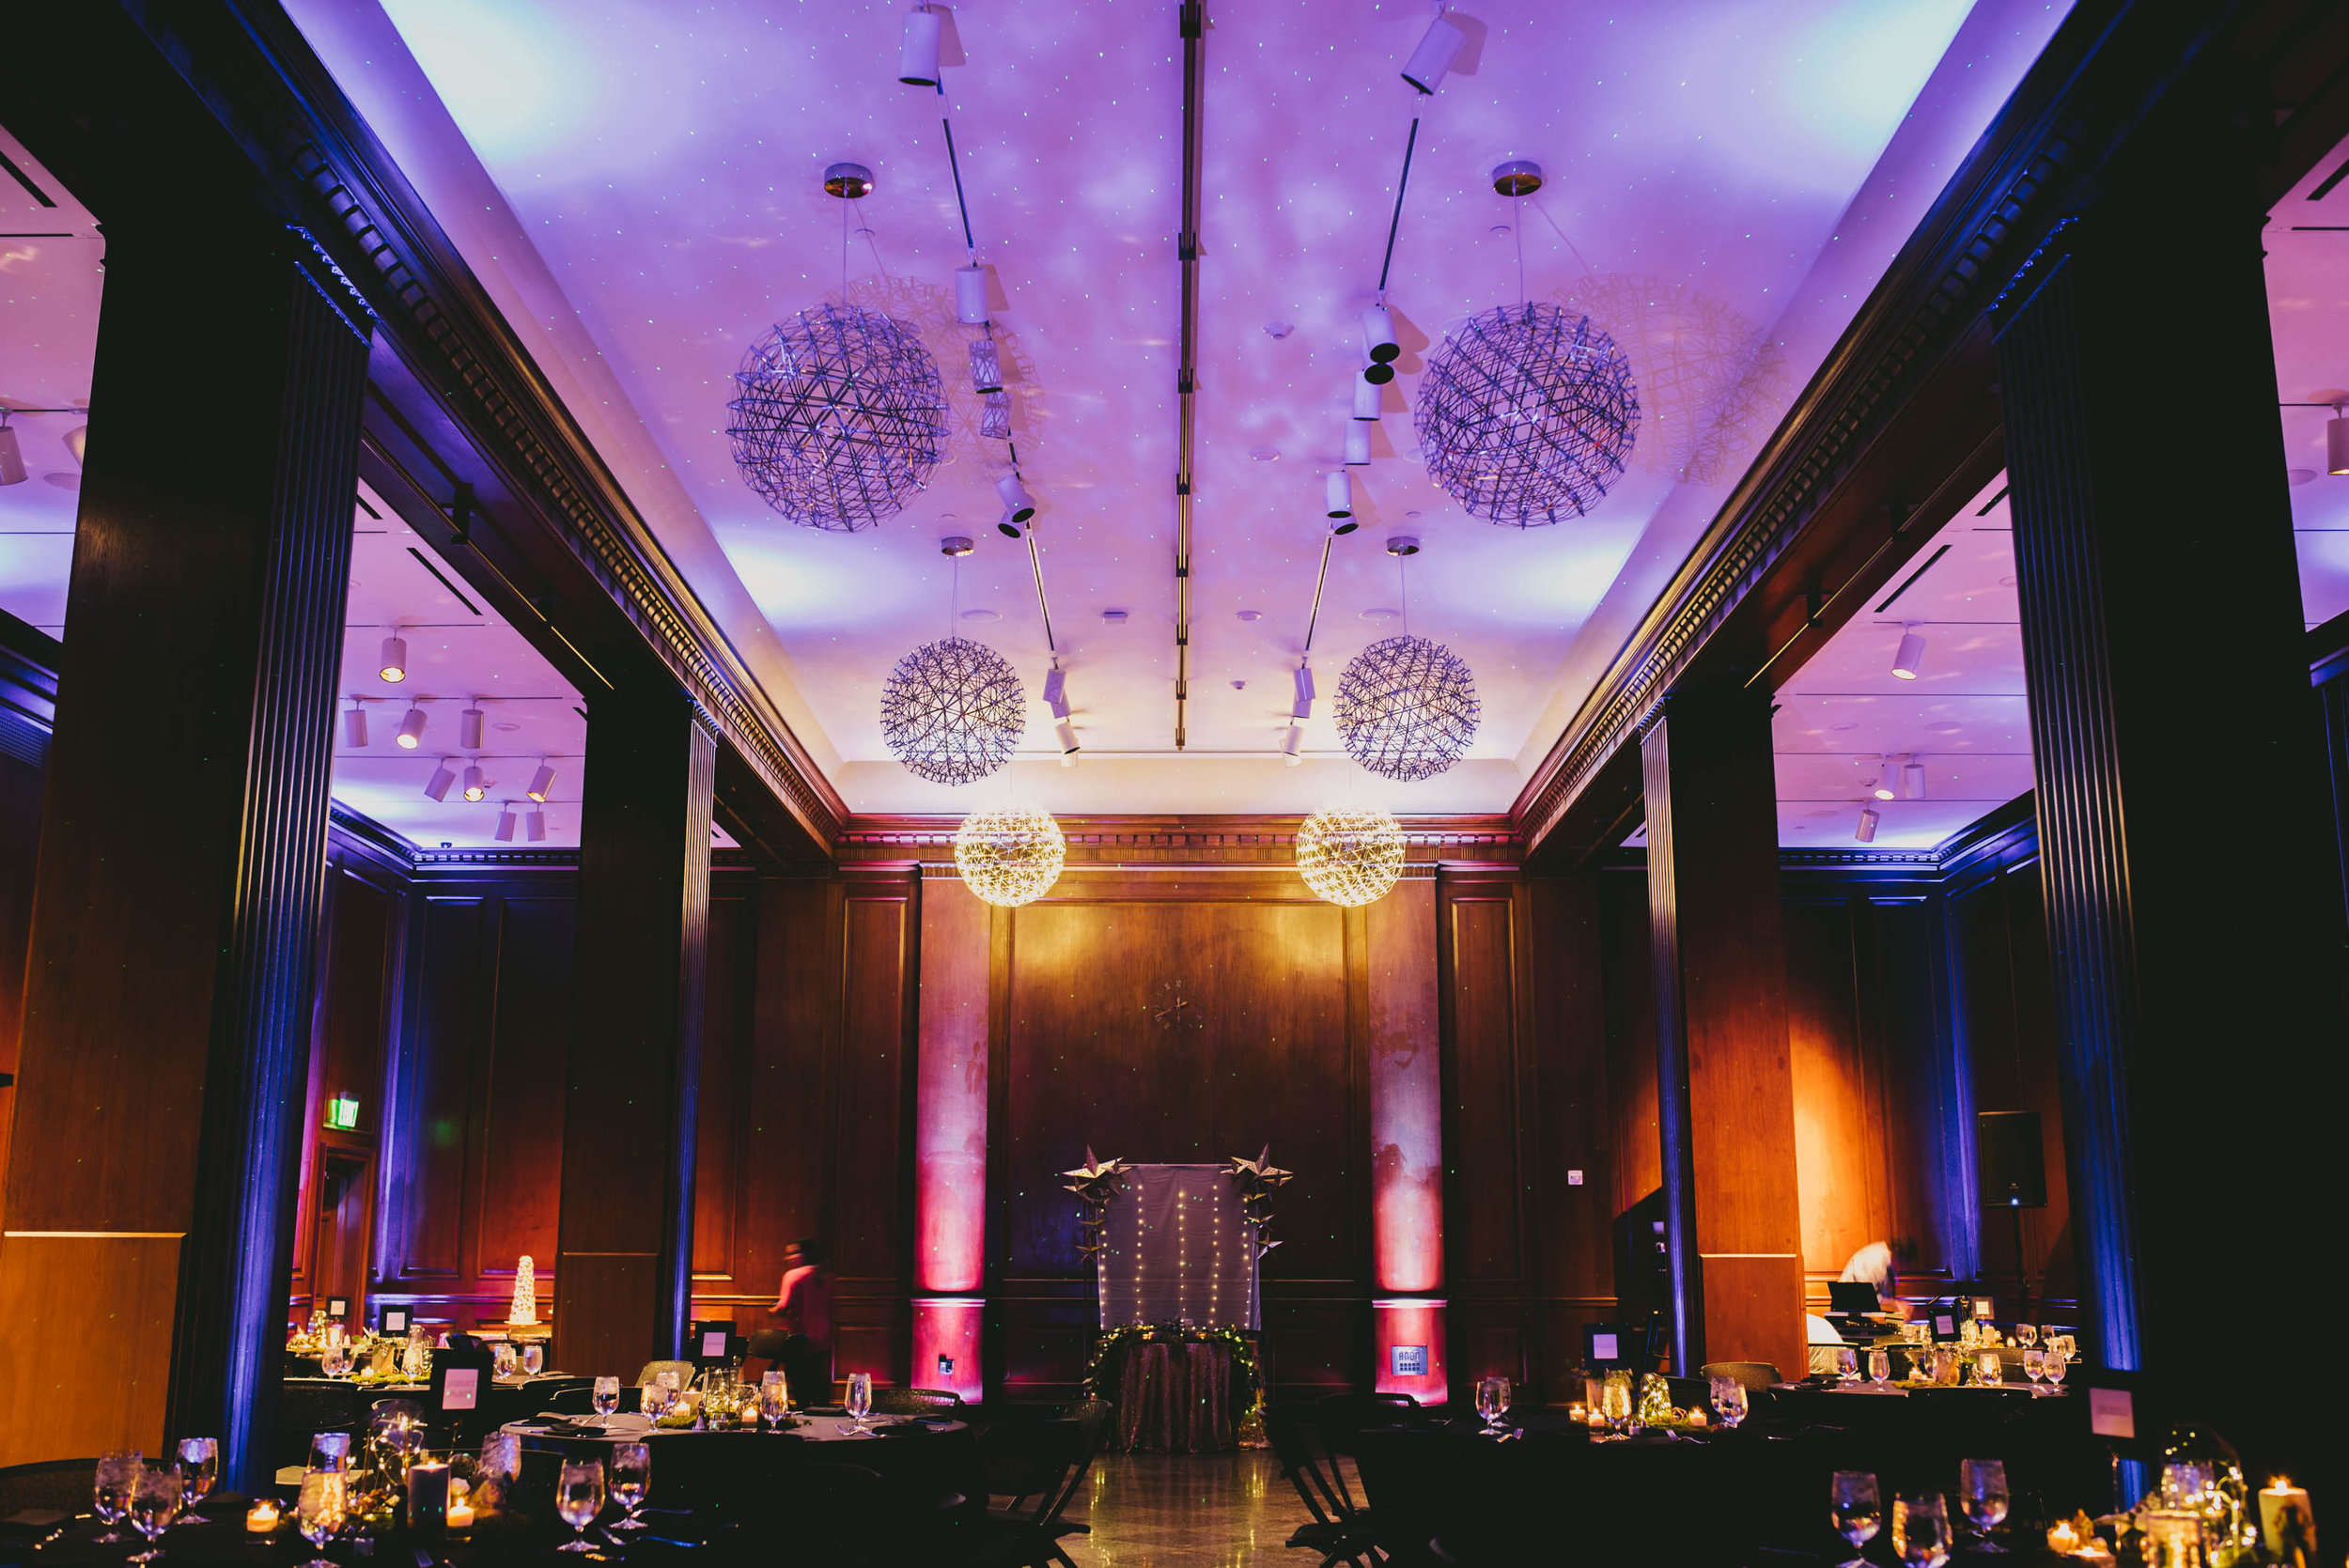 21c-hotel-durham-wedding-venue-recption-details.jpg